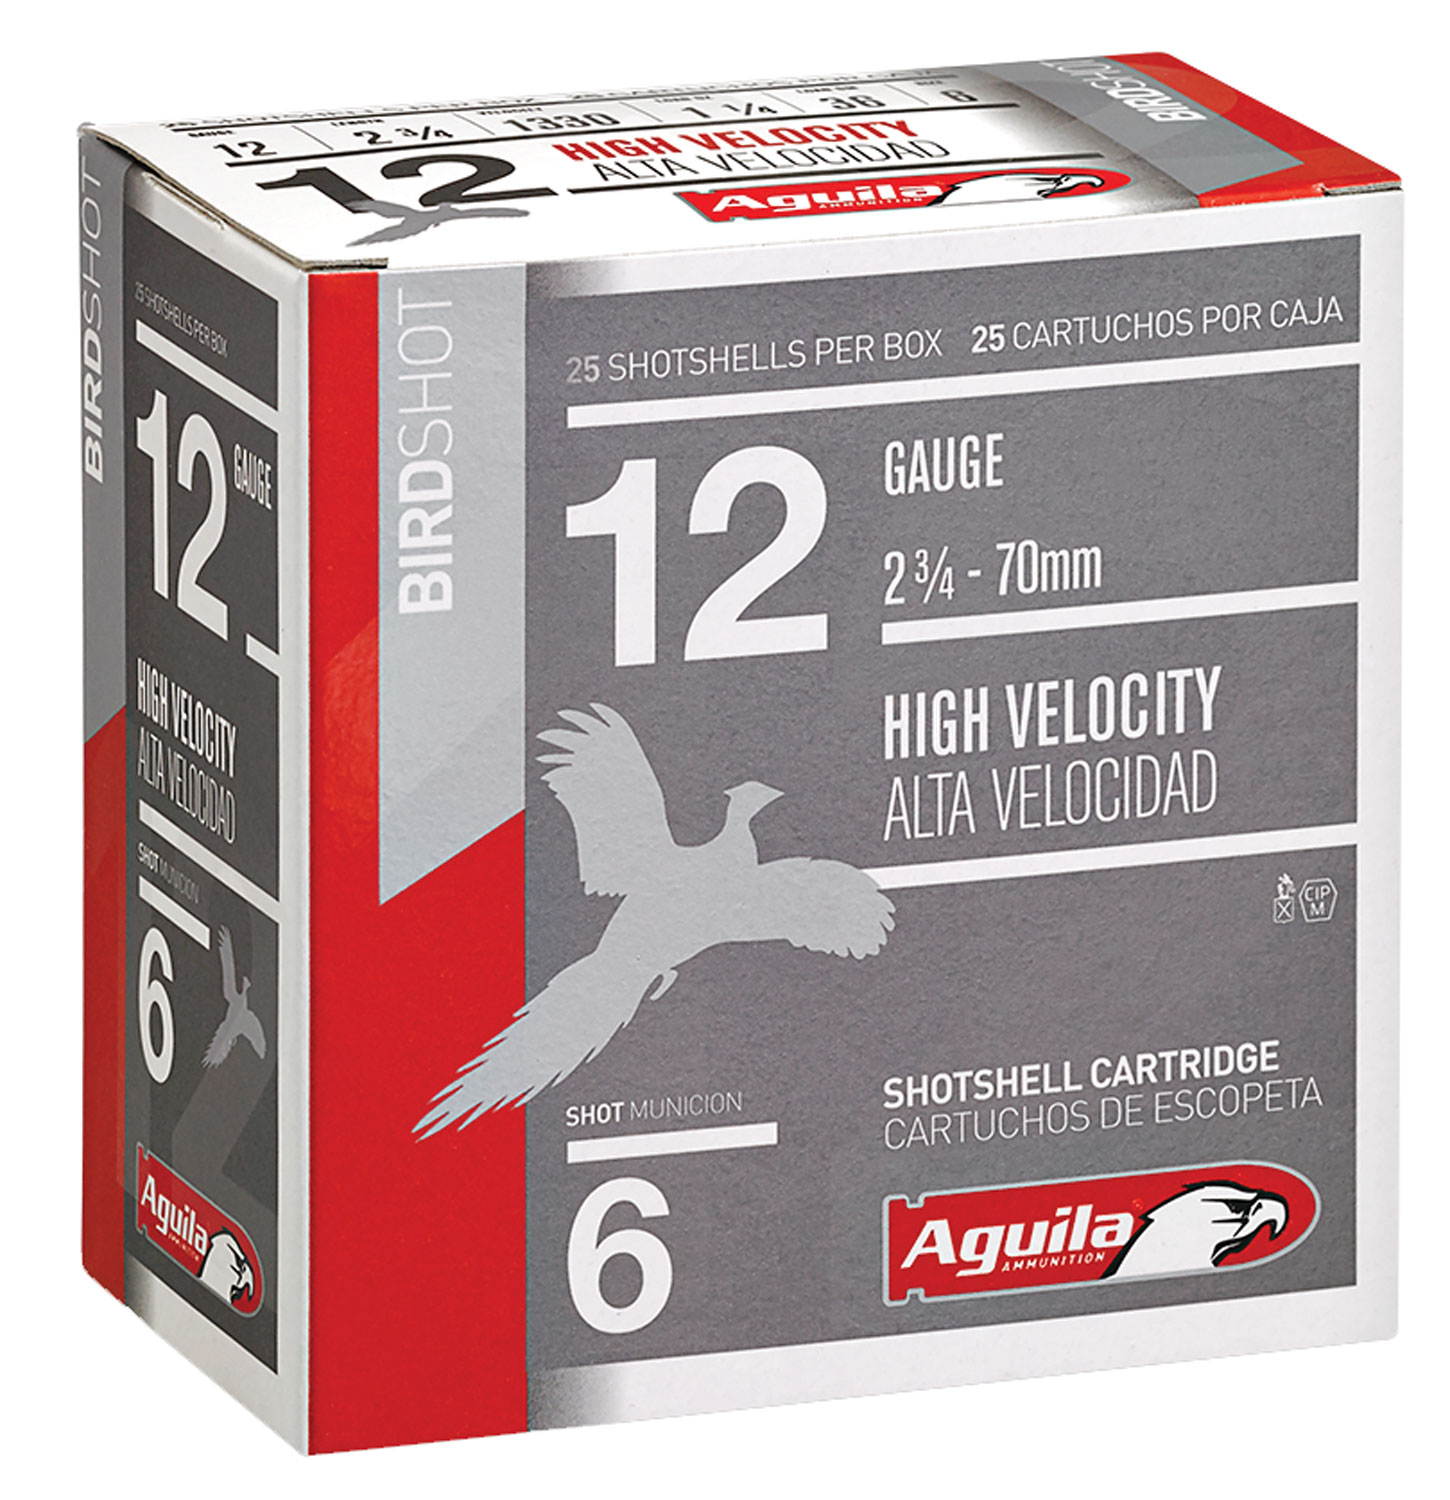 Aguila 1CHB1206 Hunting High Velocity 12 Gauge 2.75